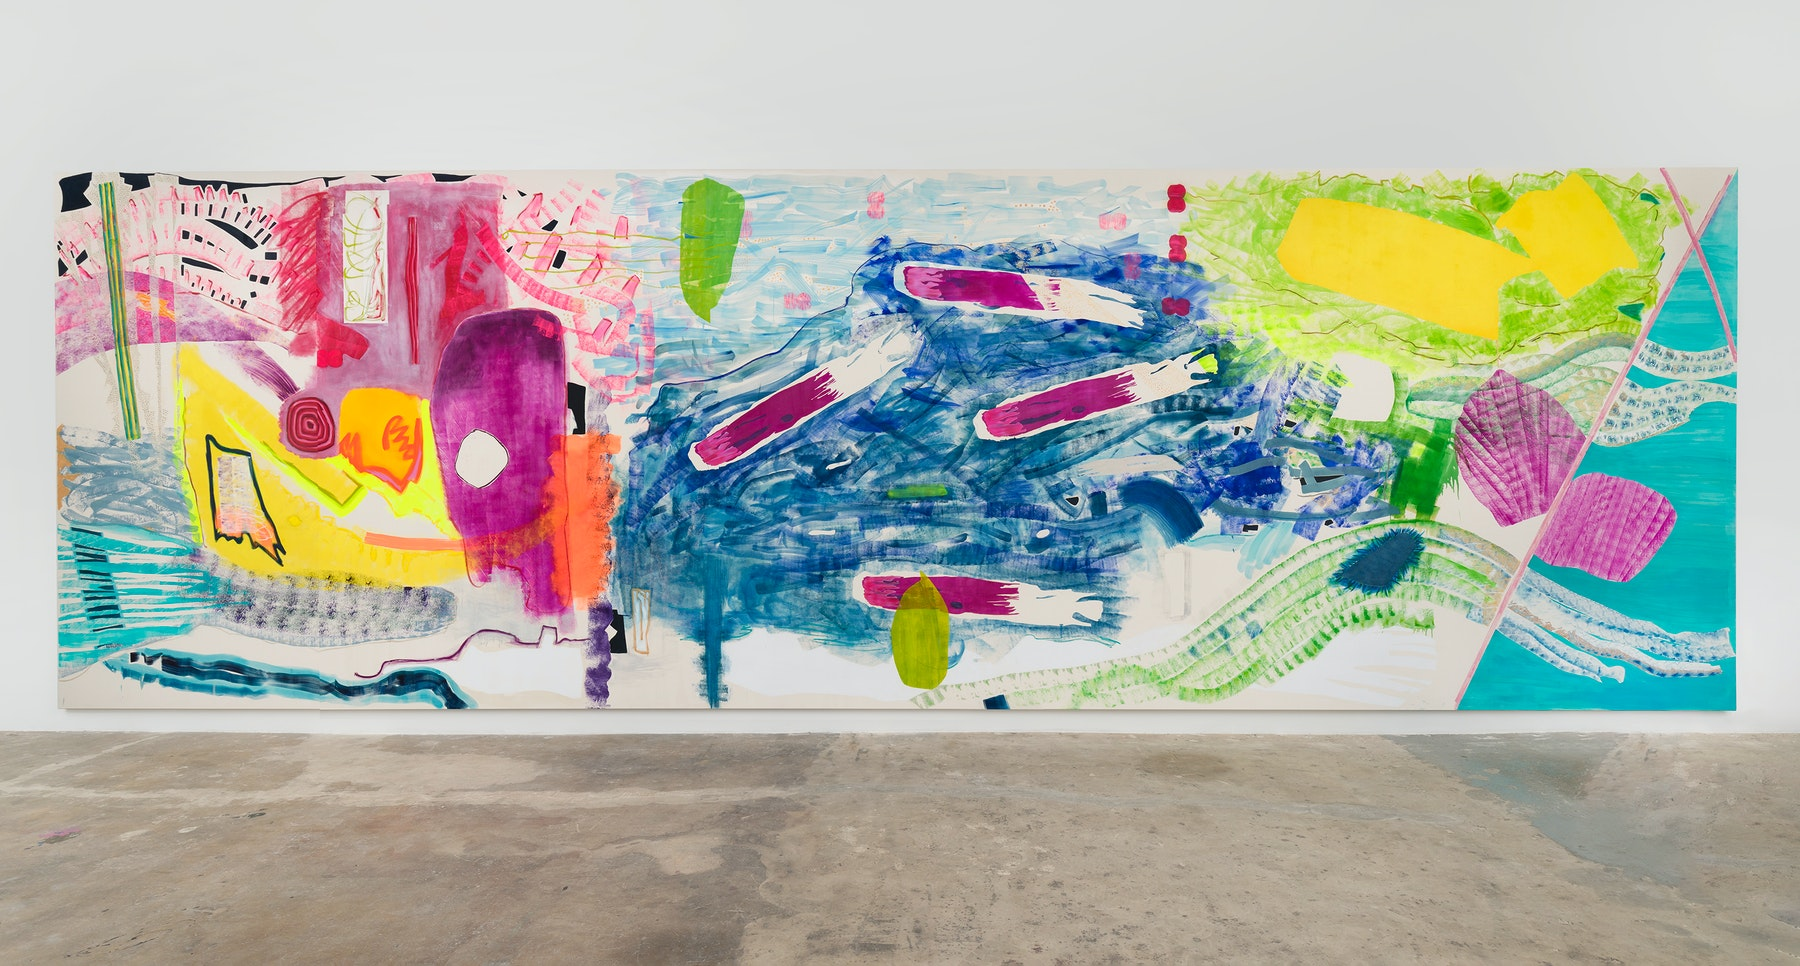 """Monique Van Genderen """"B Side,"""" 2021 Oil and pigment on canvas 11' ¹⁄₂"""" x 35' [HxW] (336.55 x 1066.8 cm) Inventory #VGE405 Courtesy of the artist and Vielmetter Los Angeles Photo Credit: Jeff McLane"""